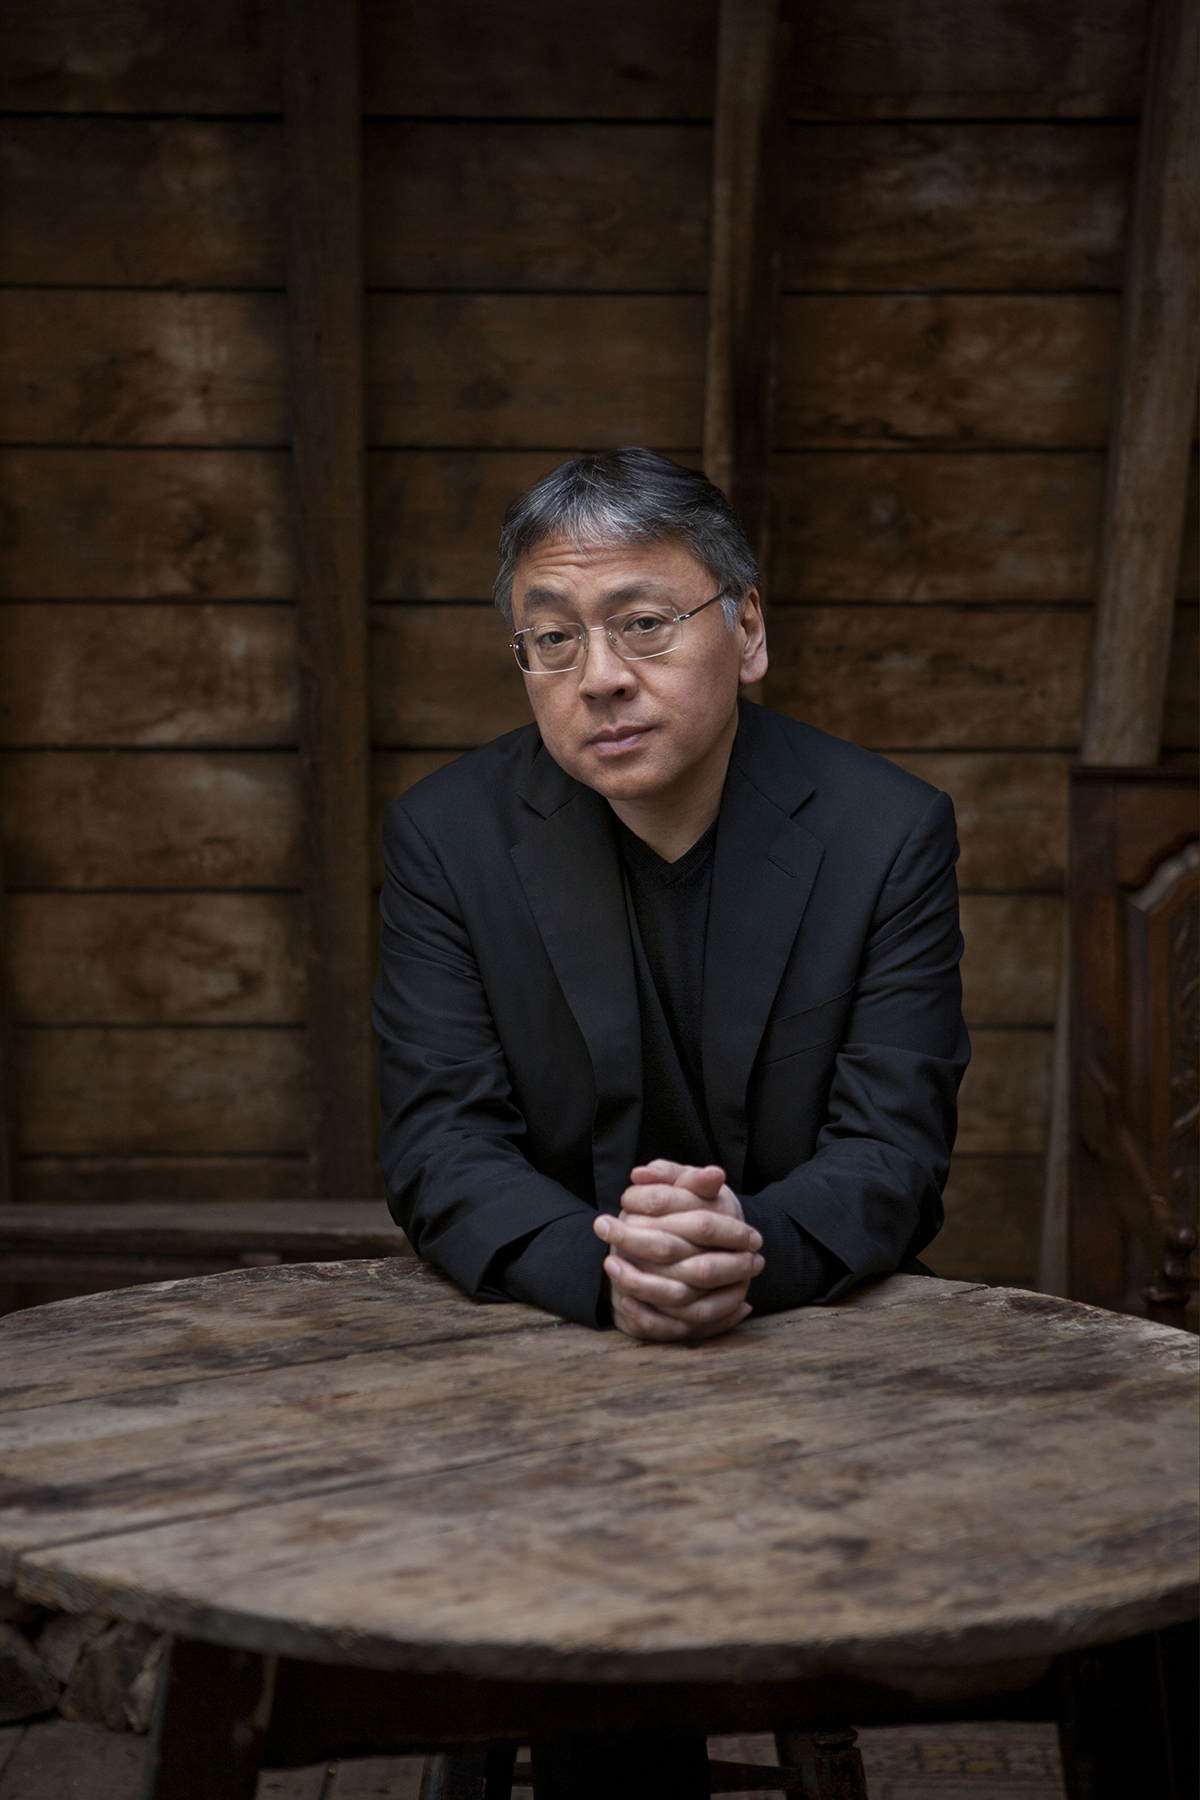 Kazuo Ishiguro: A writer of the floating world